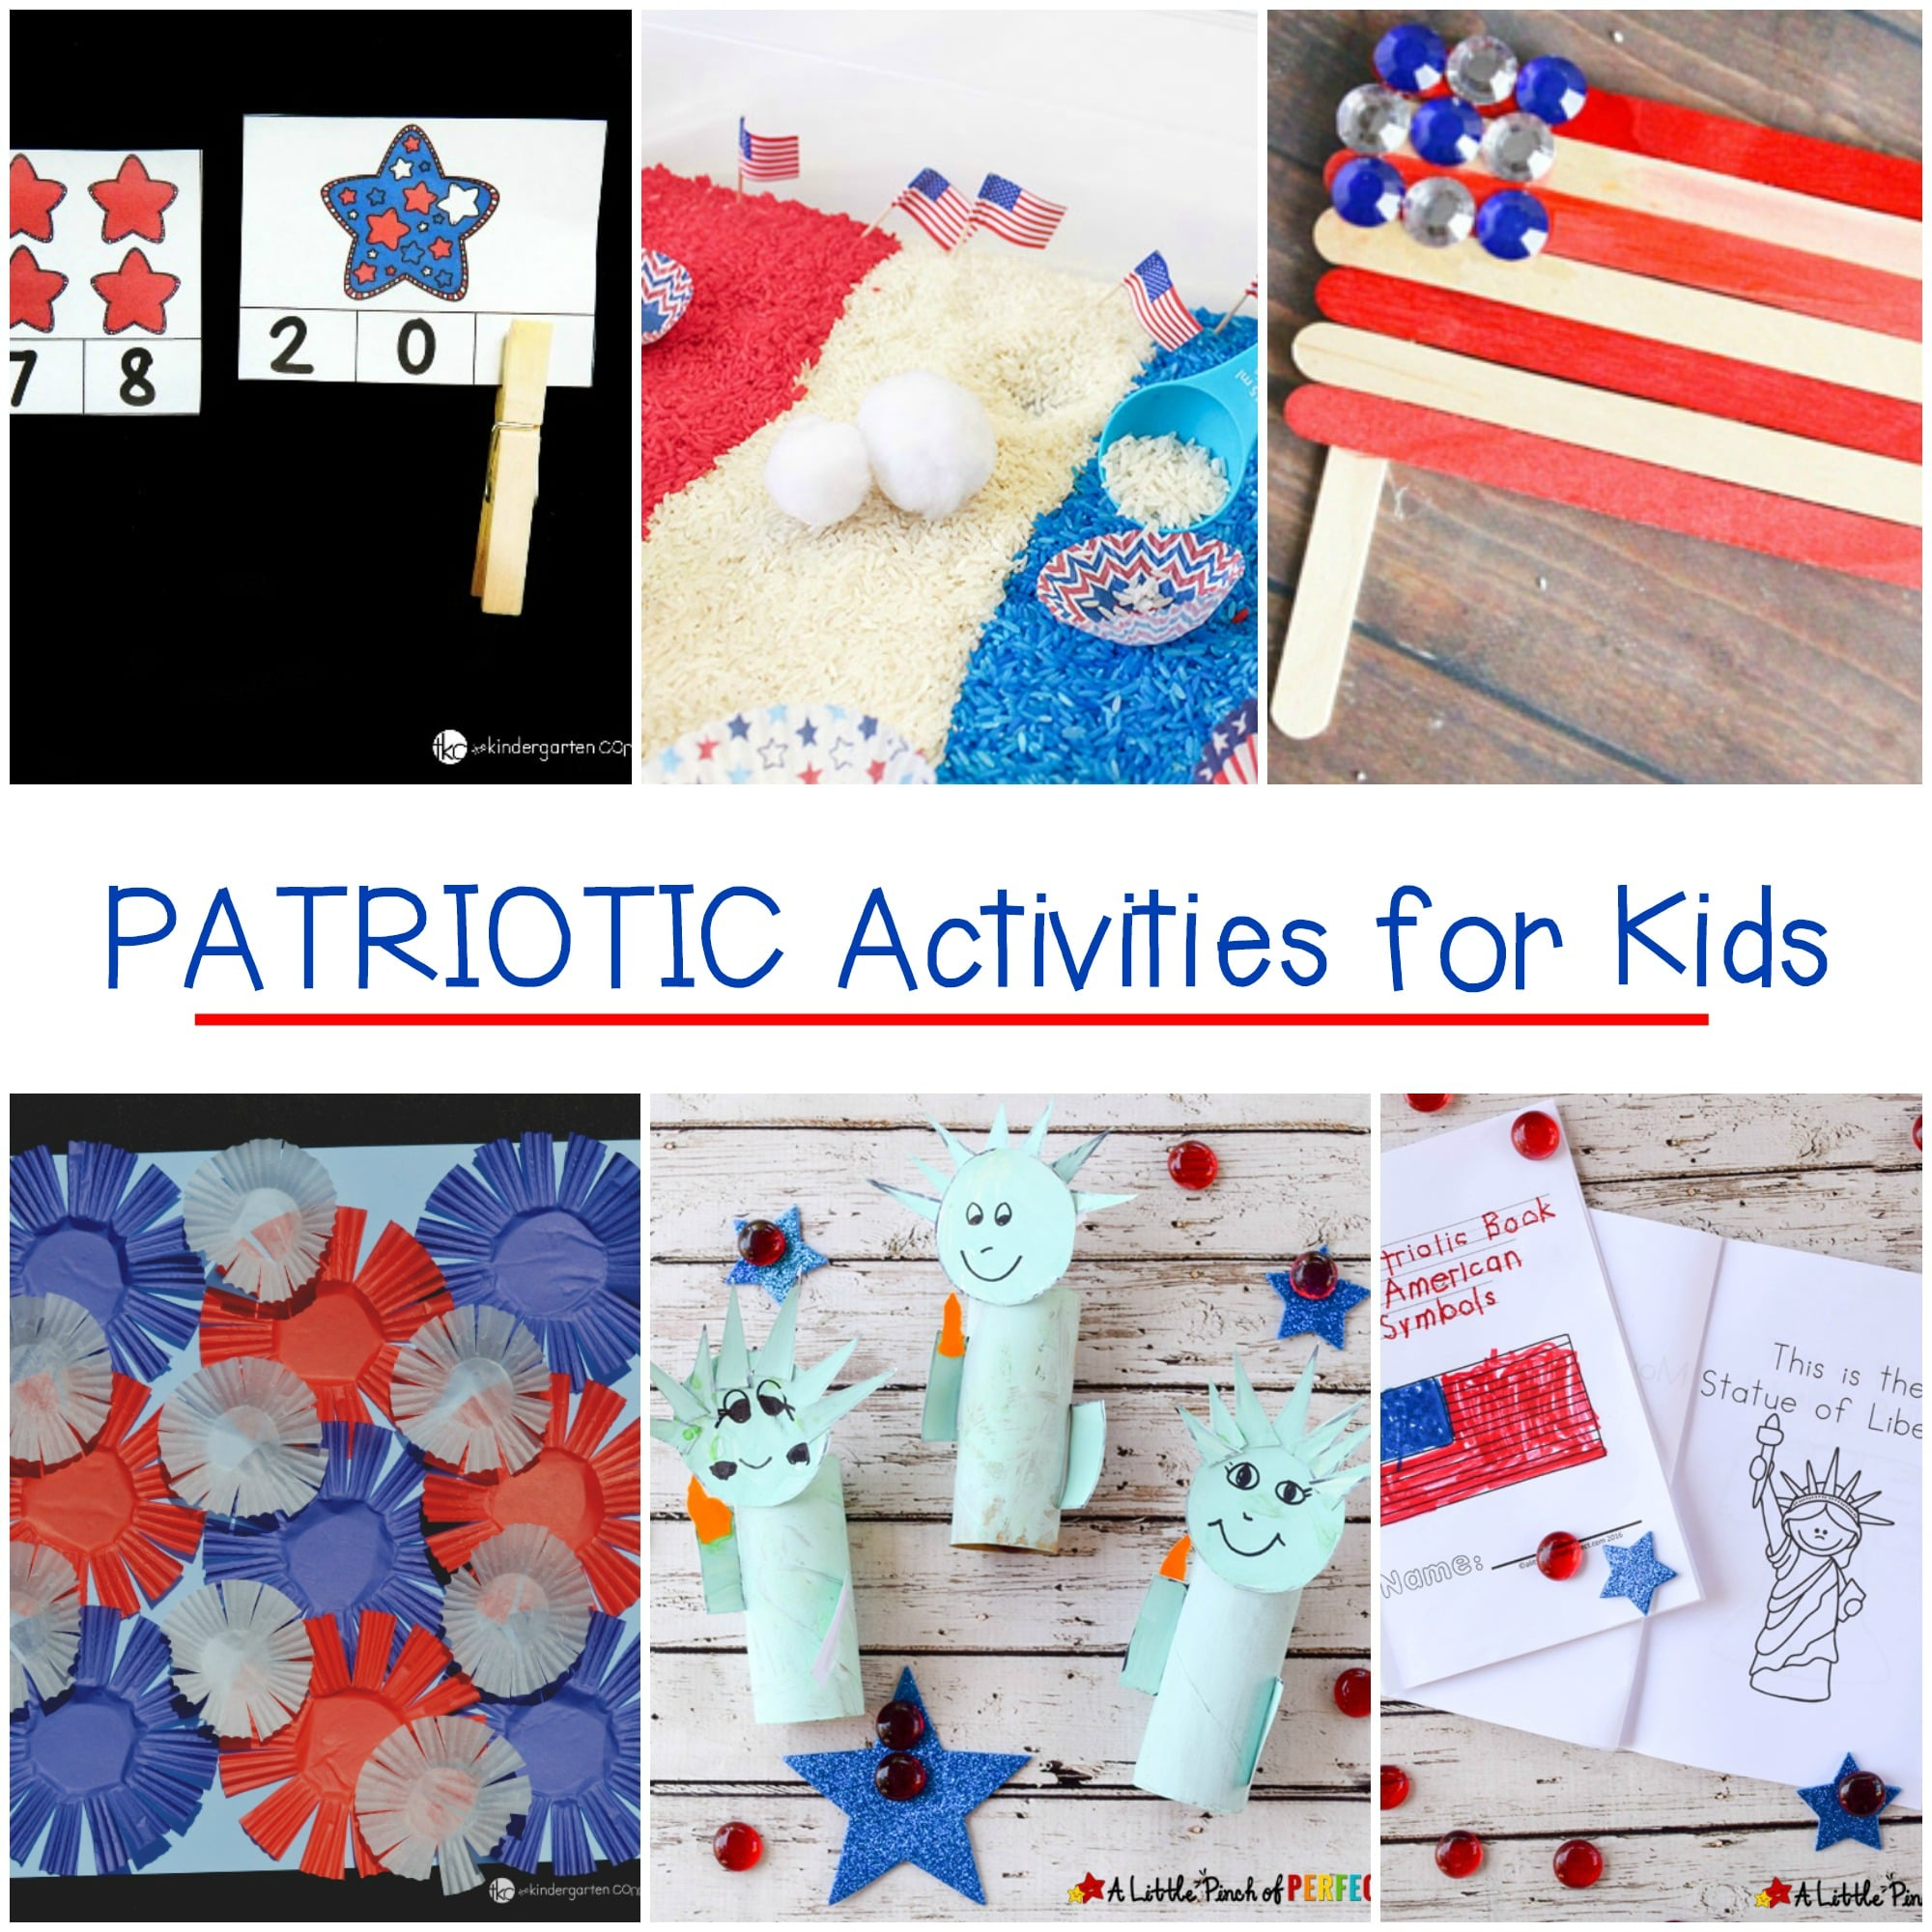 These fun printables, crafts, and patriotic activities for kids are perfect for Memorial Day, the 4th of July, President's Day, and Veteran's Day!